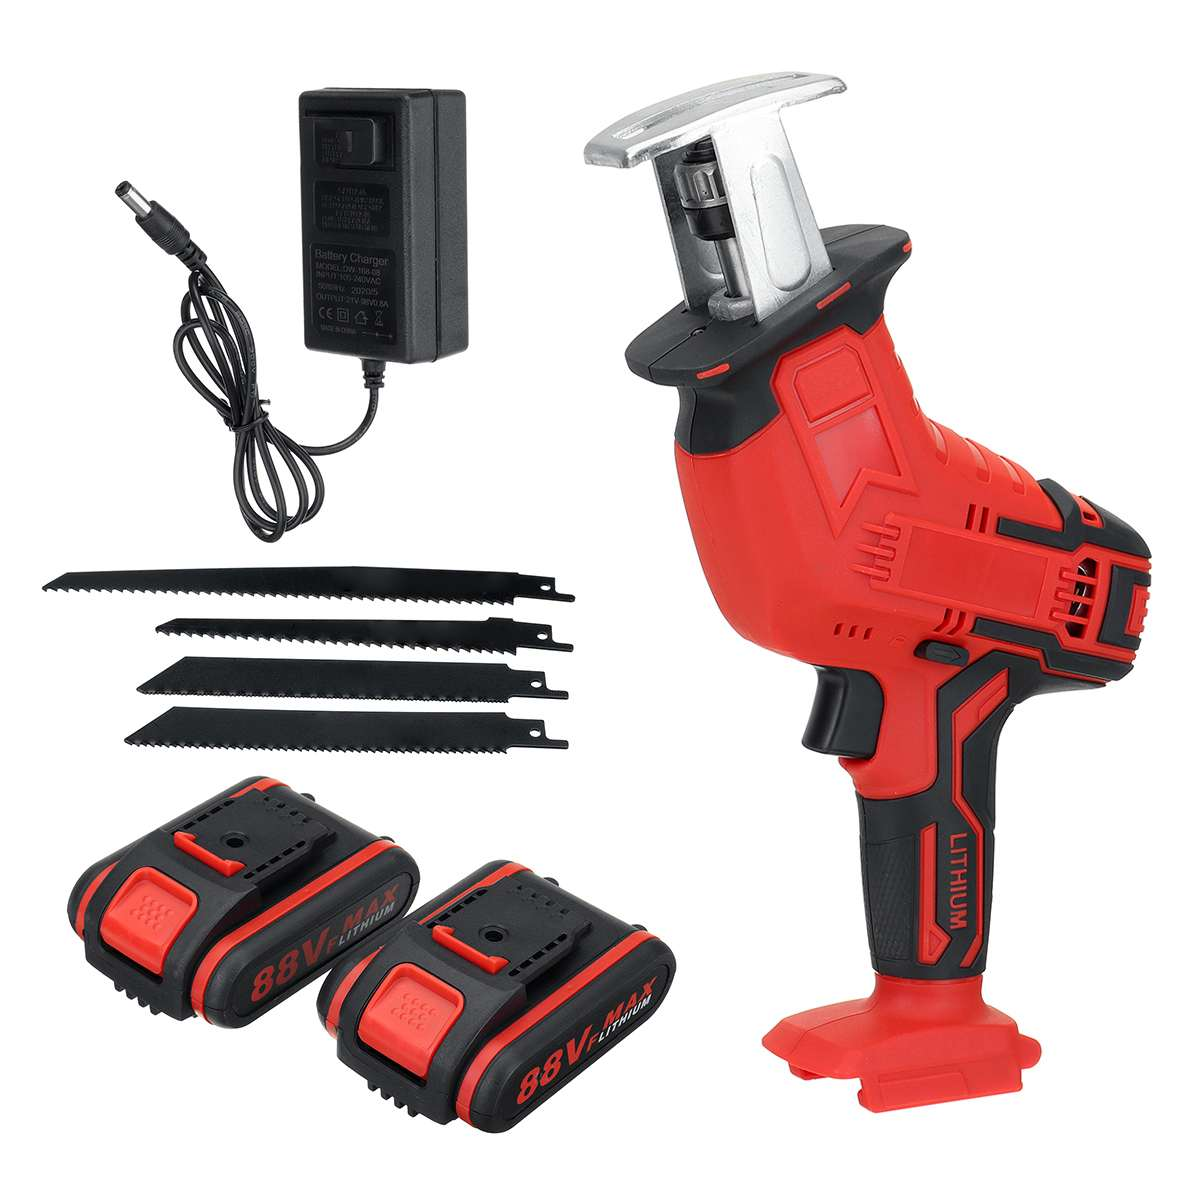 Tools : Drillpro 88V Cordless Reciprocating Saw Portable Replacement Electric Saw Metal Wood Cutting Machine Tool For 18V makita Battery